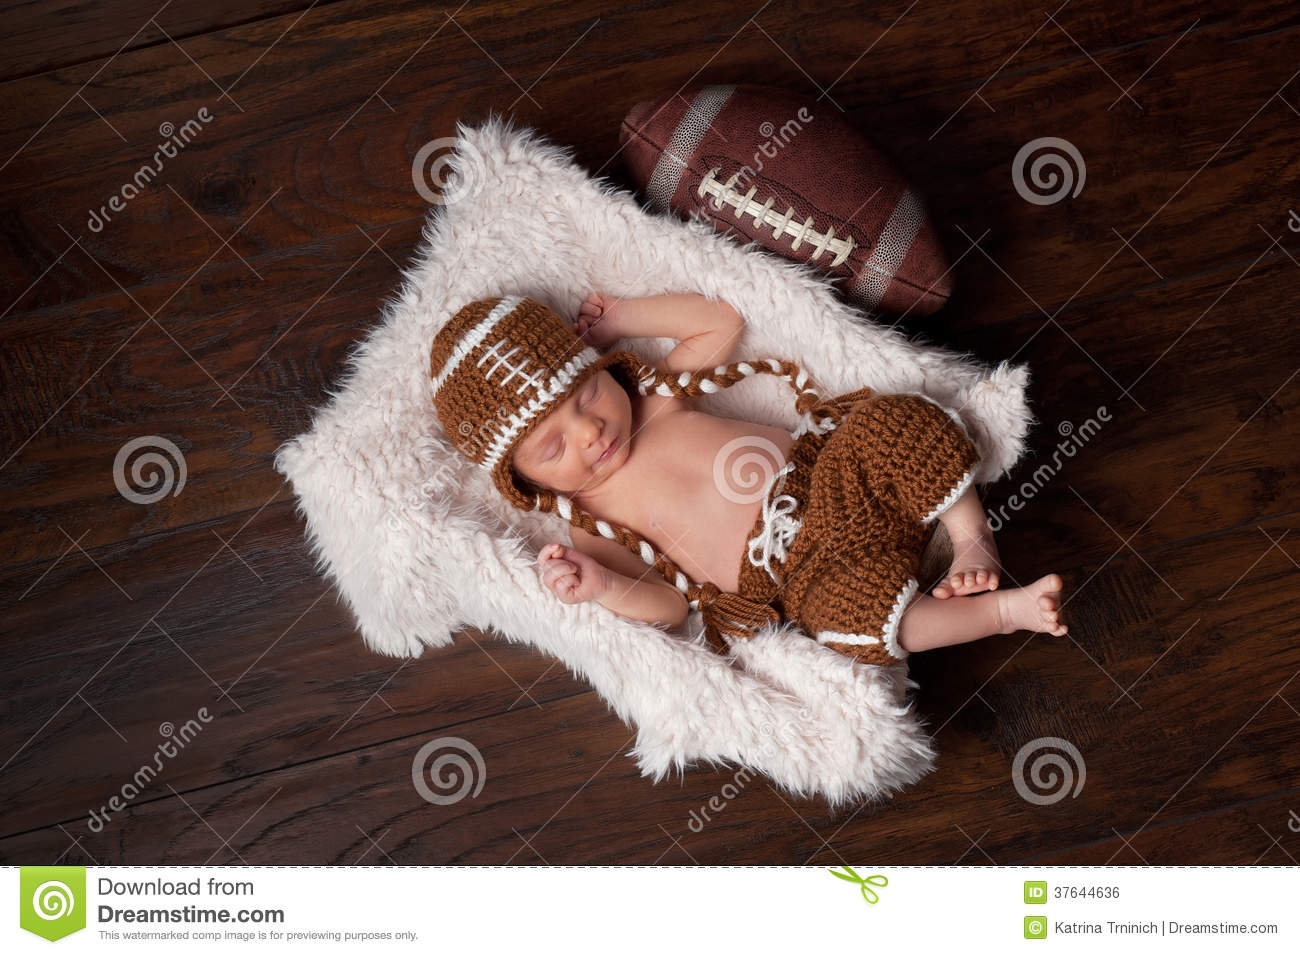 Newborn Infant Outfits Newborn Baby Boy In Football Outfit Stock Photo Image Of